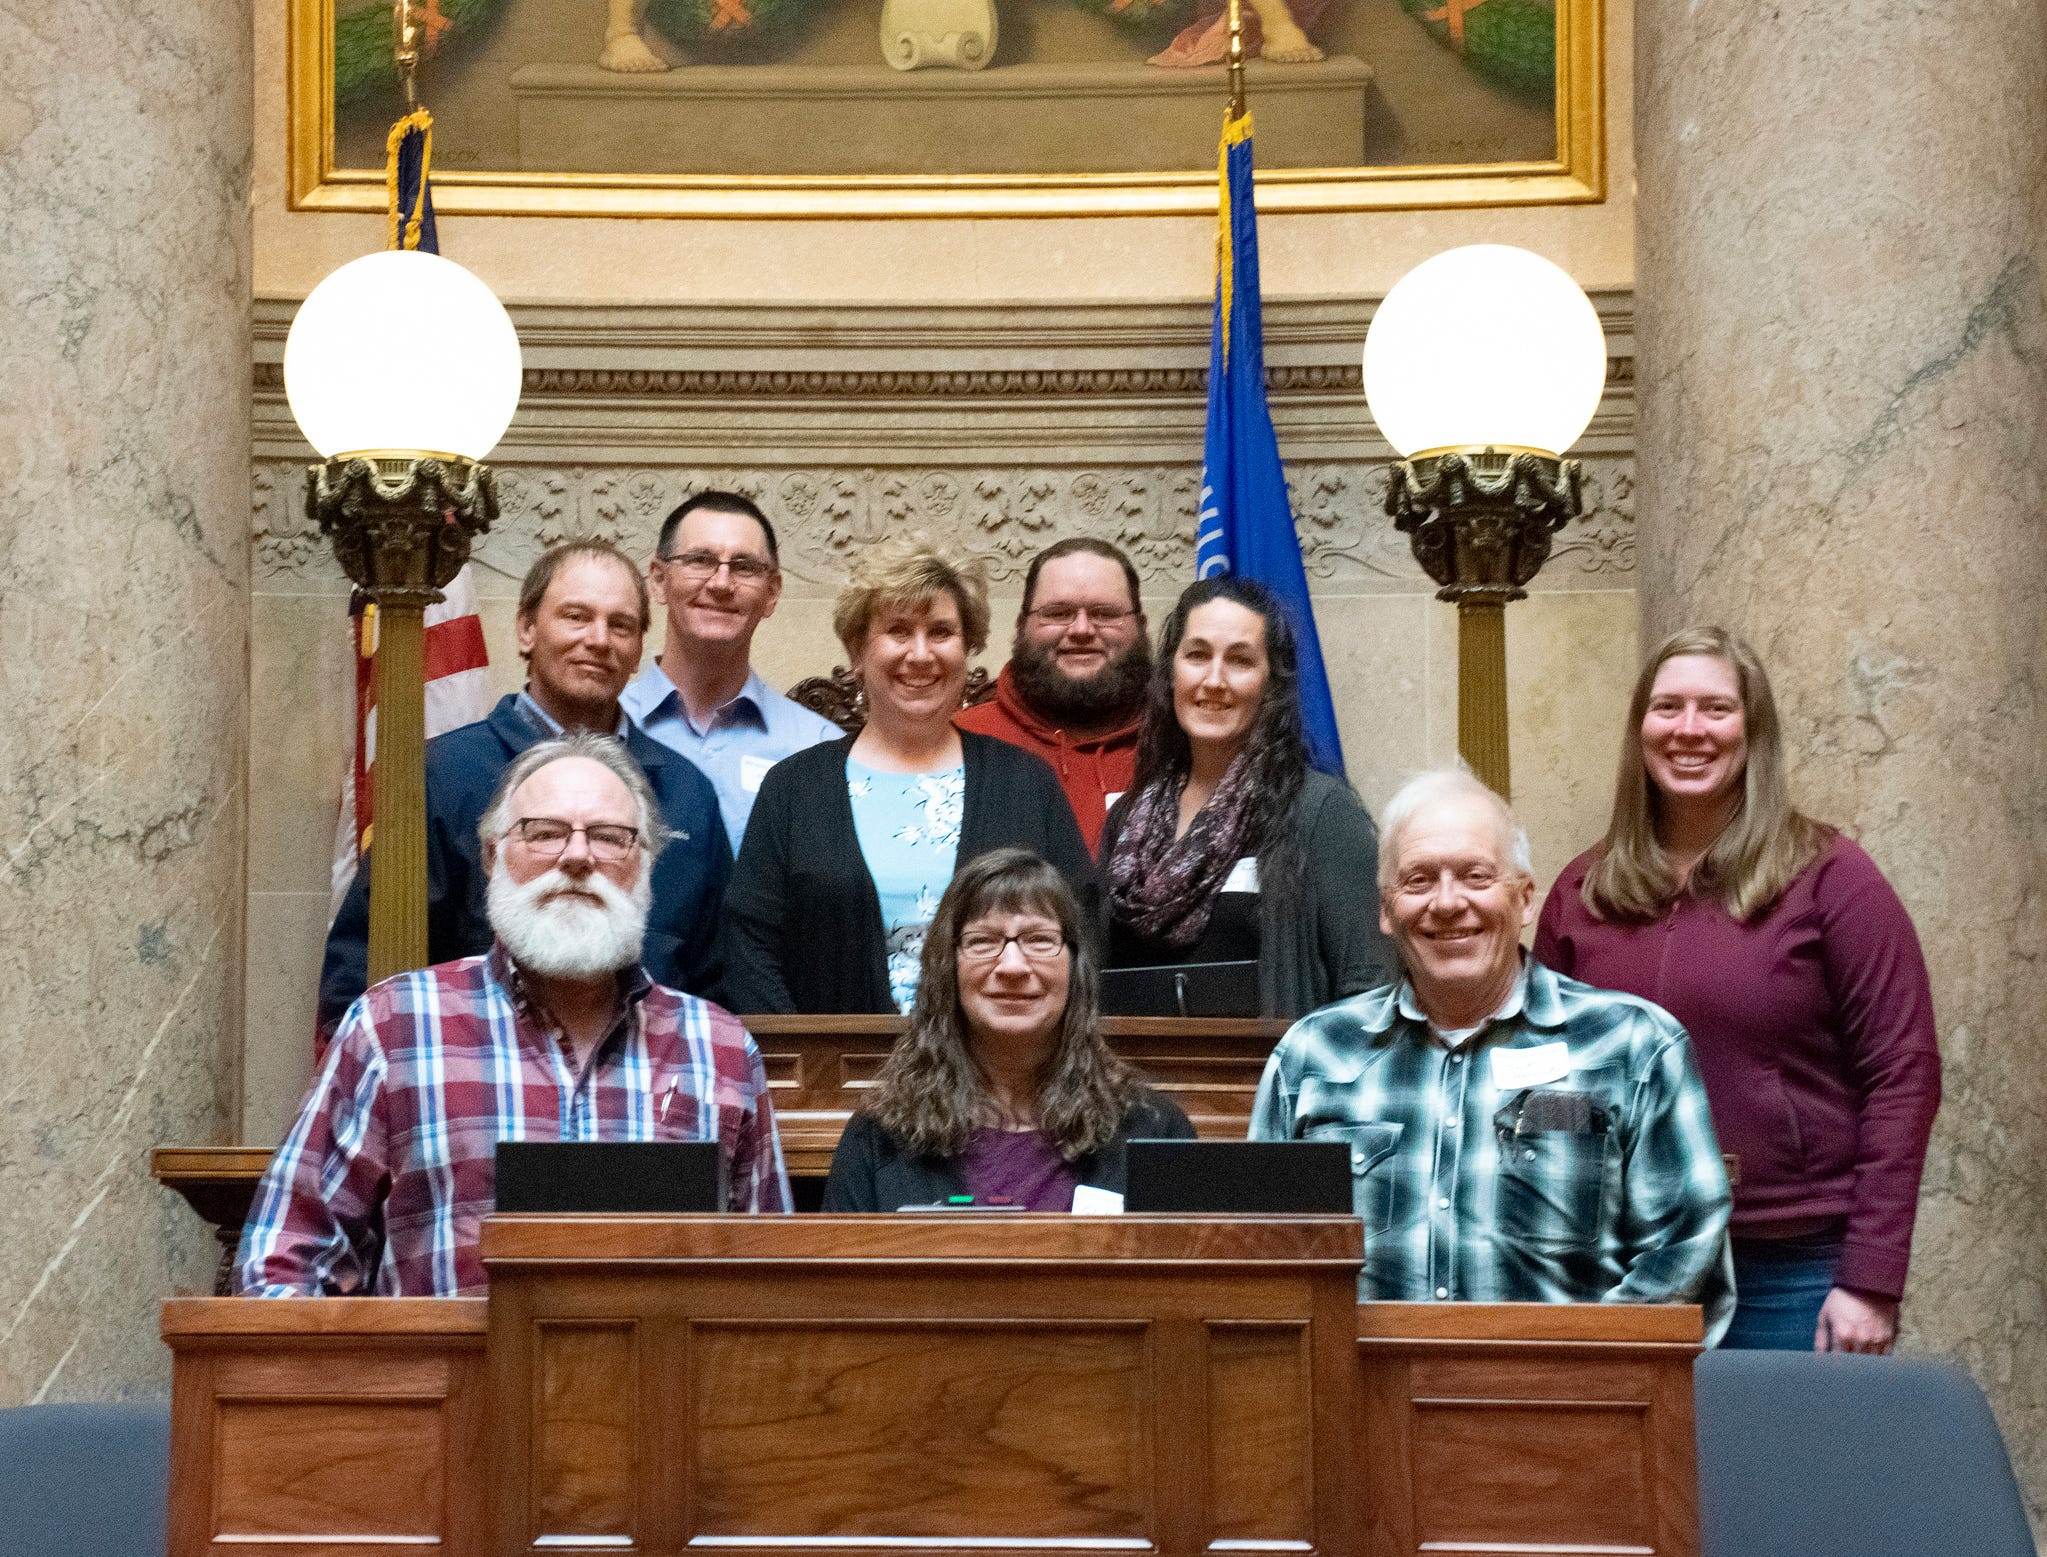 Farmers and agriculturists from the Madison area talked with legislators while visiting the Capitol.